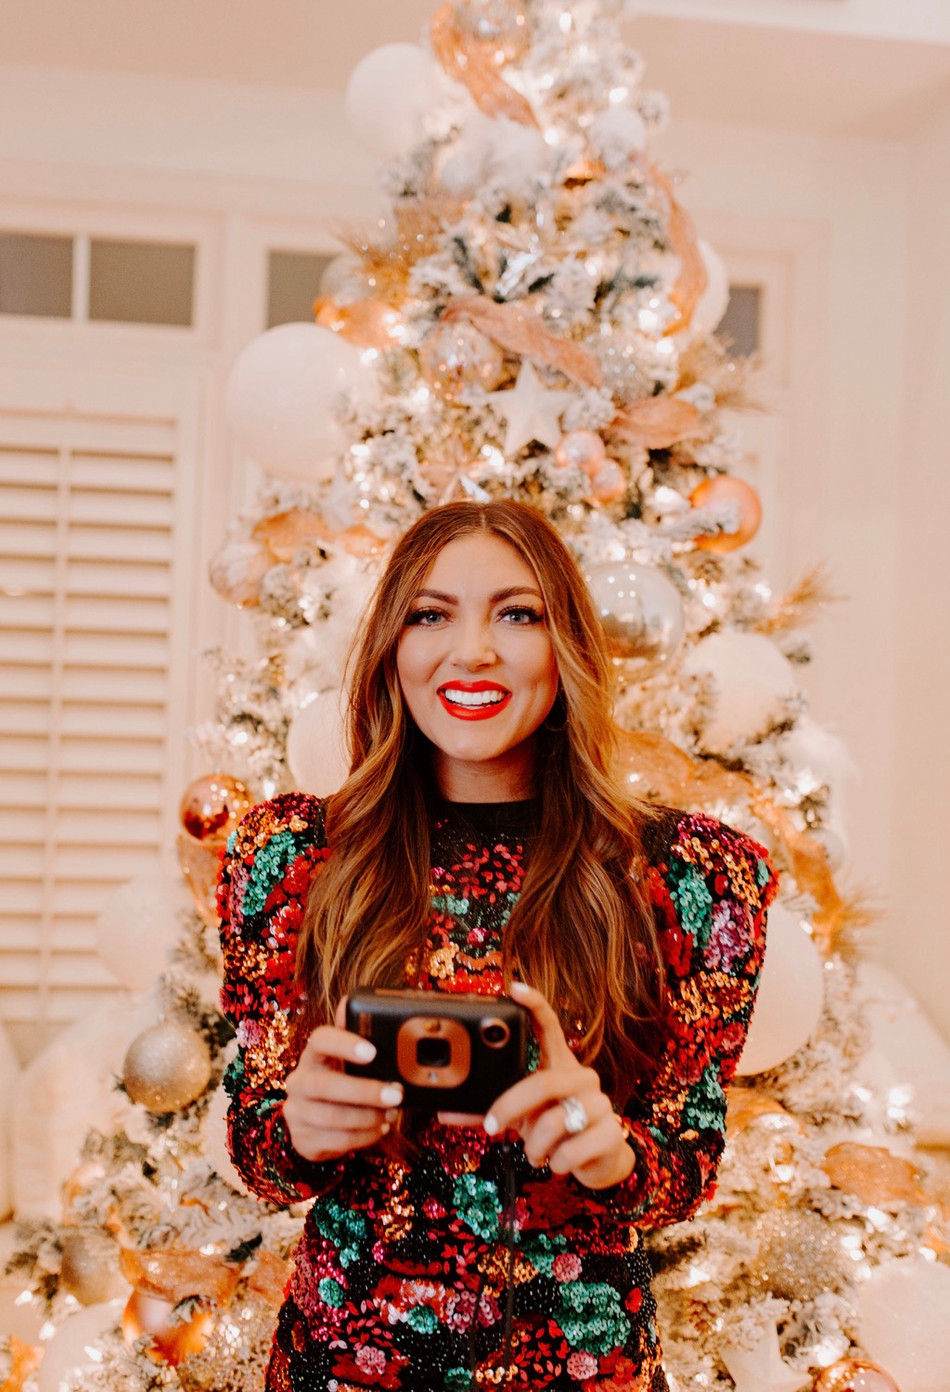 Capture your Holiday Memories with FUJIFILM Instax mini LiPlay®